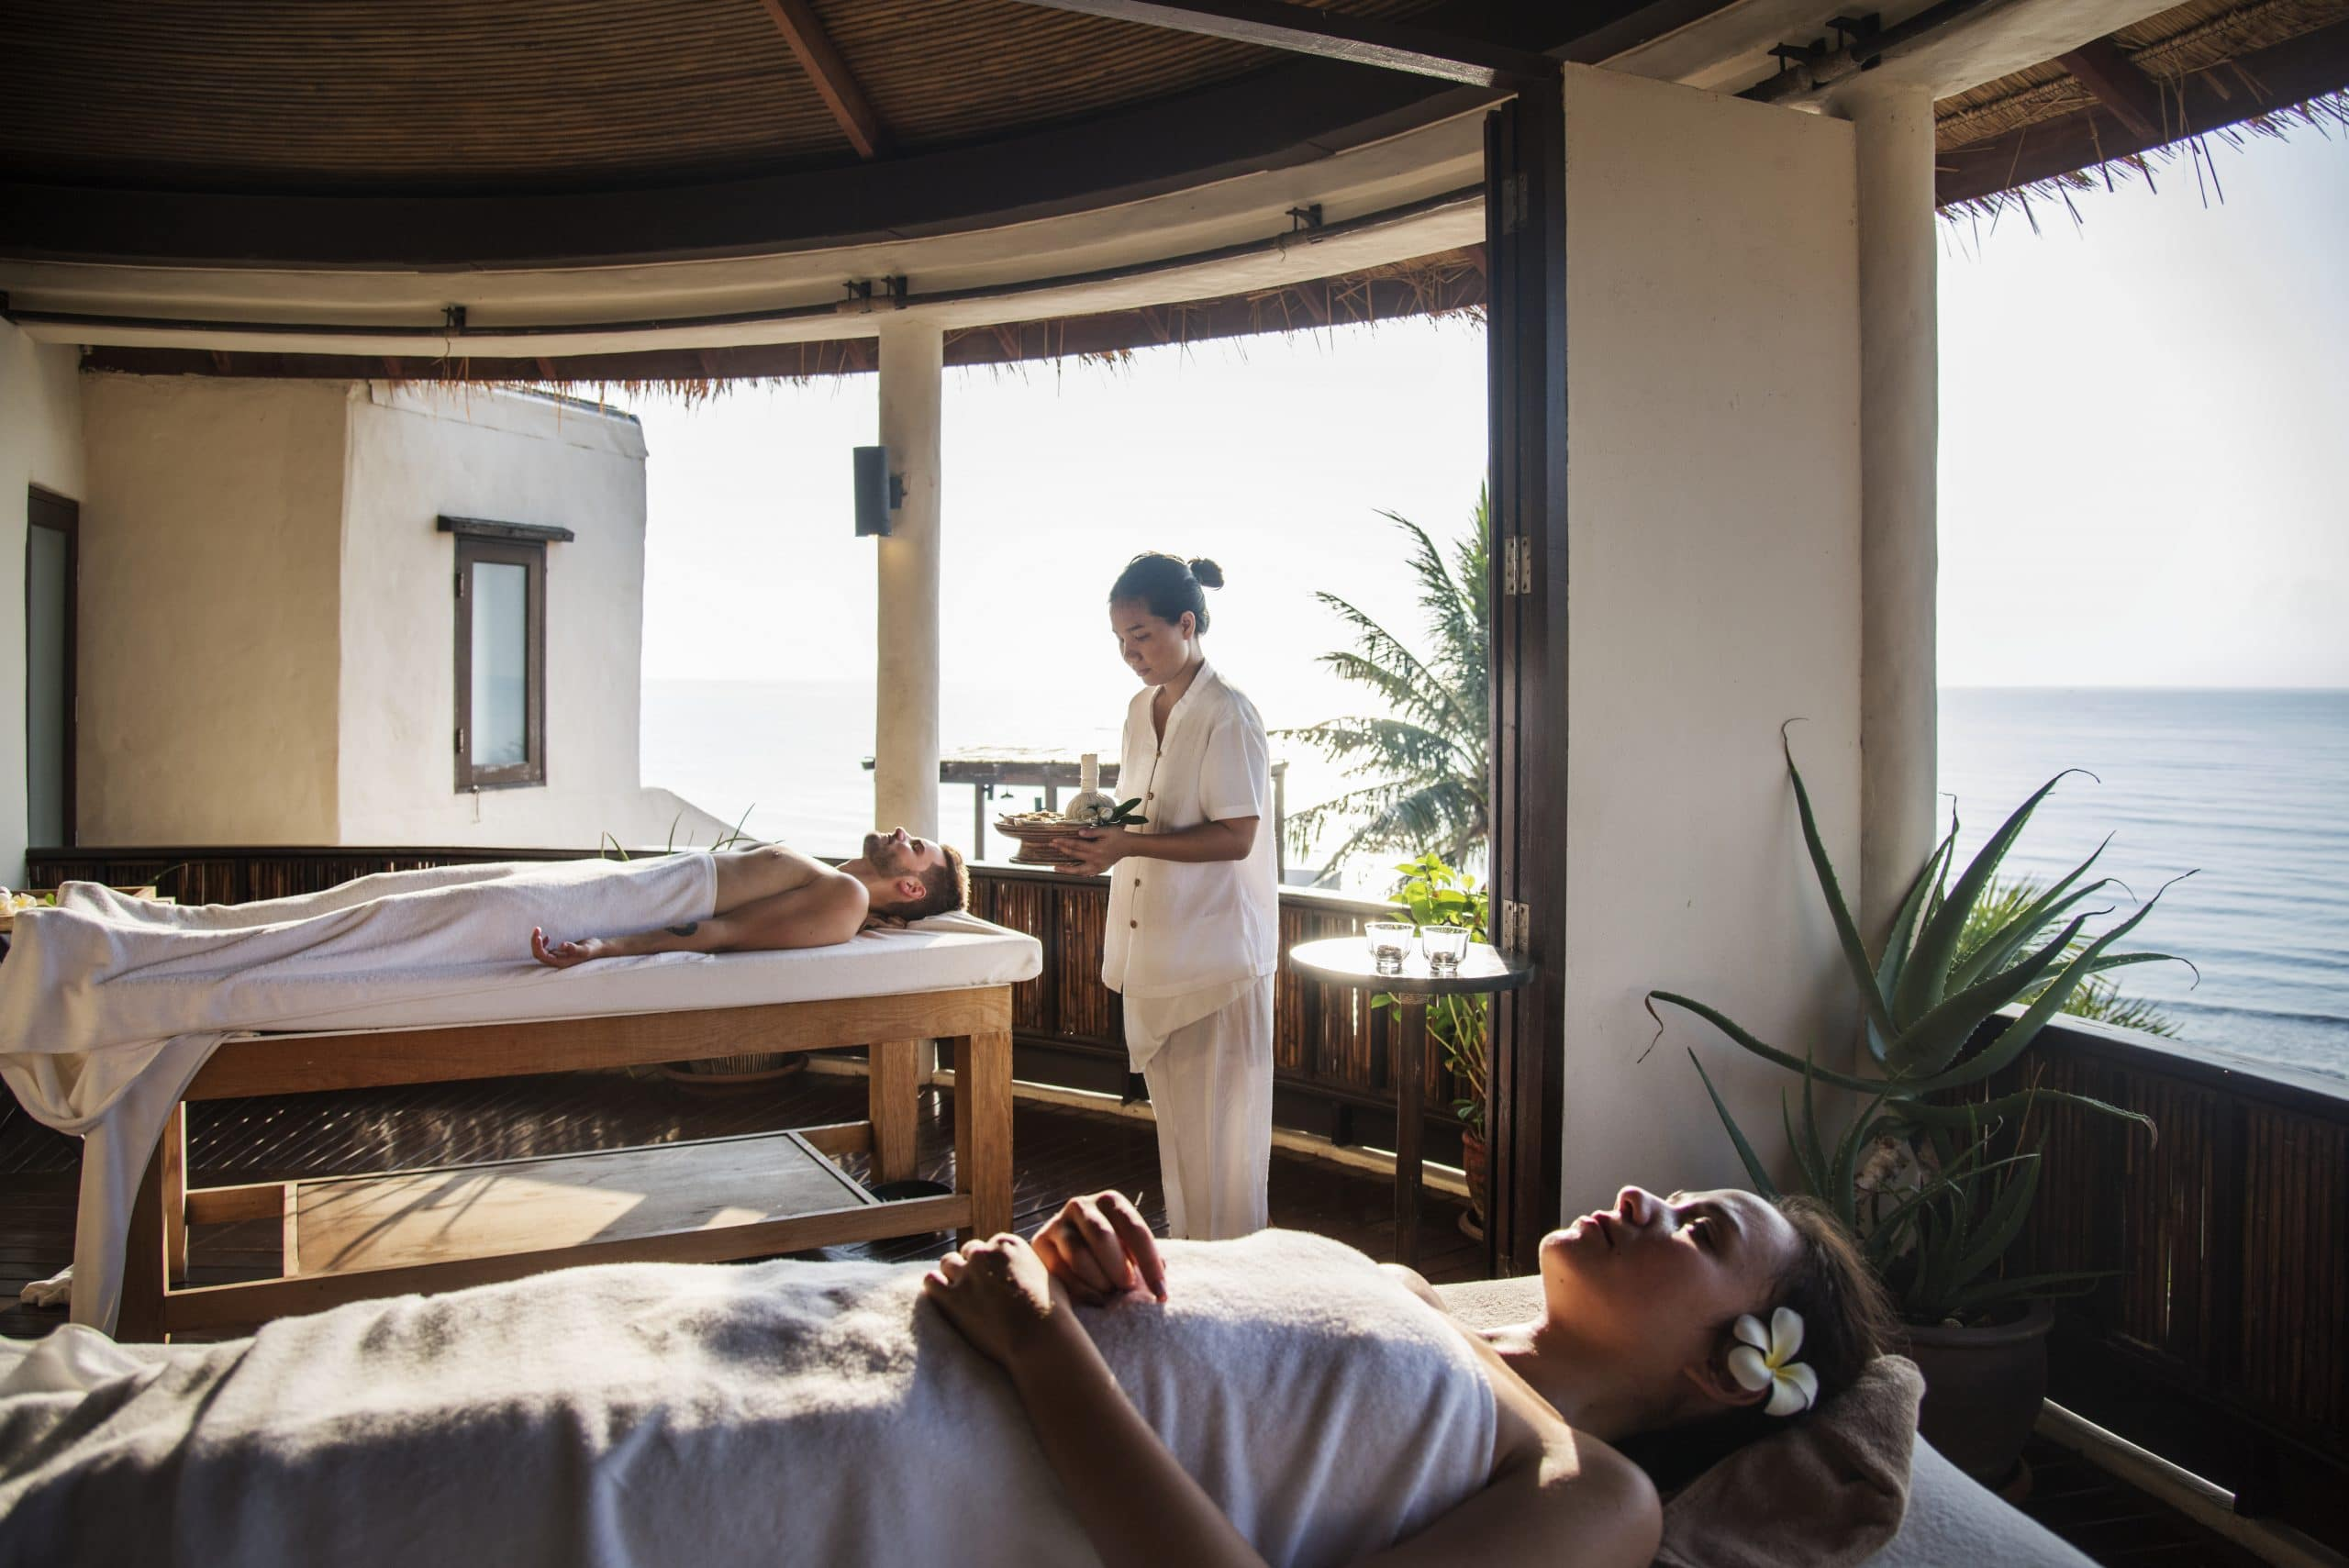 Hotel guests enjoying luxury spa amenities for their wellness